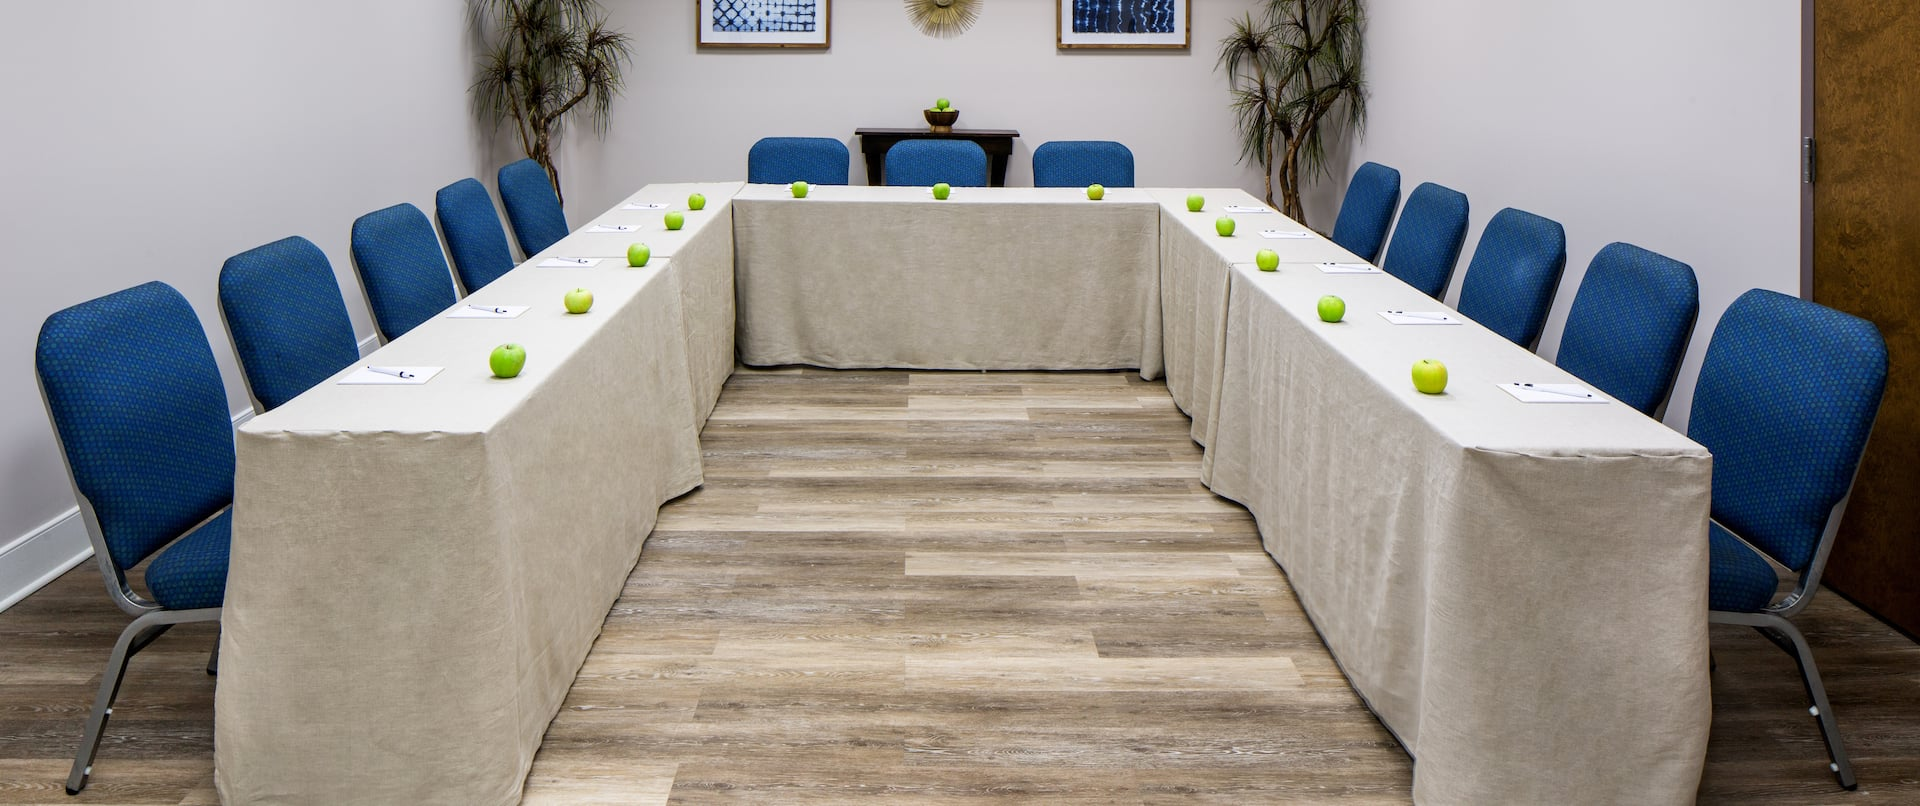 Meeting Room With U-Shaped Seating